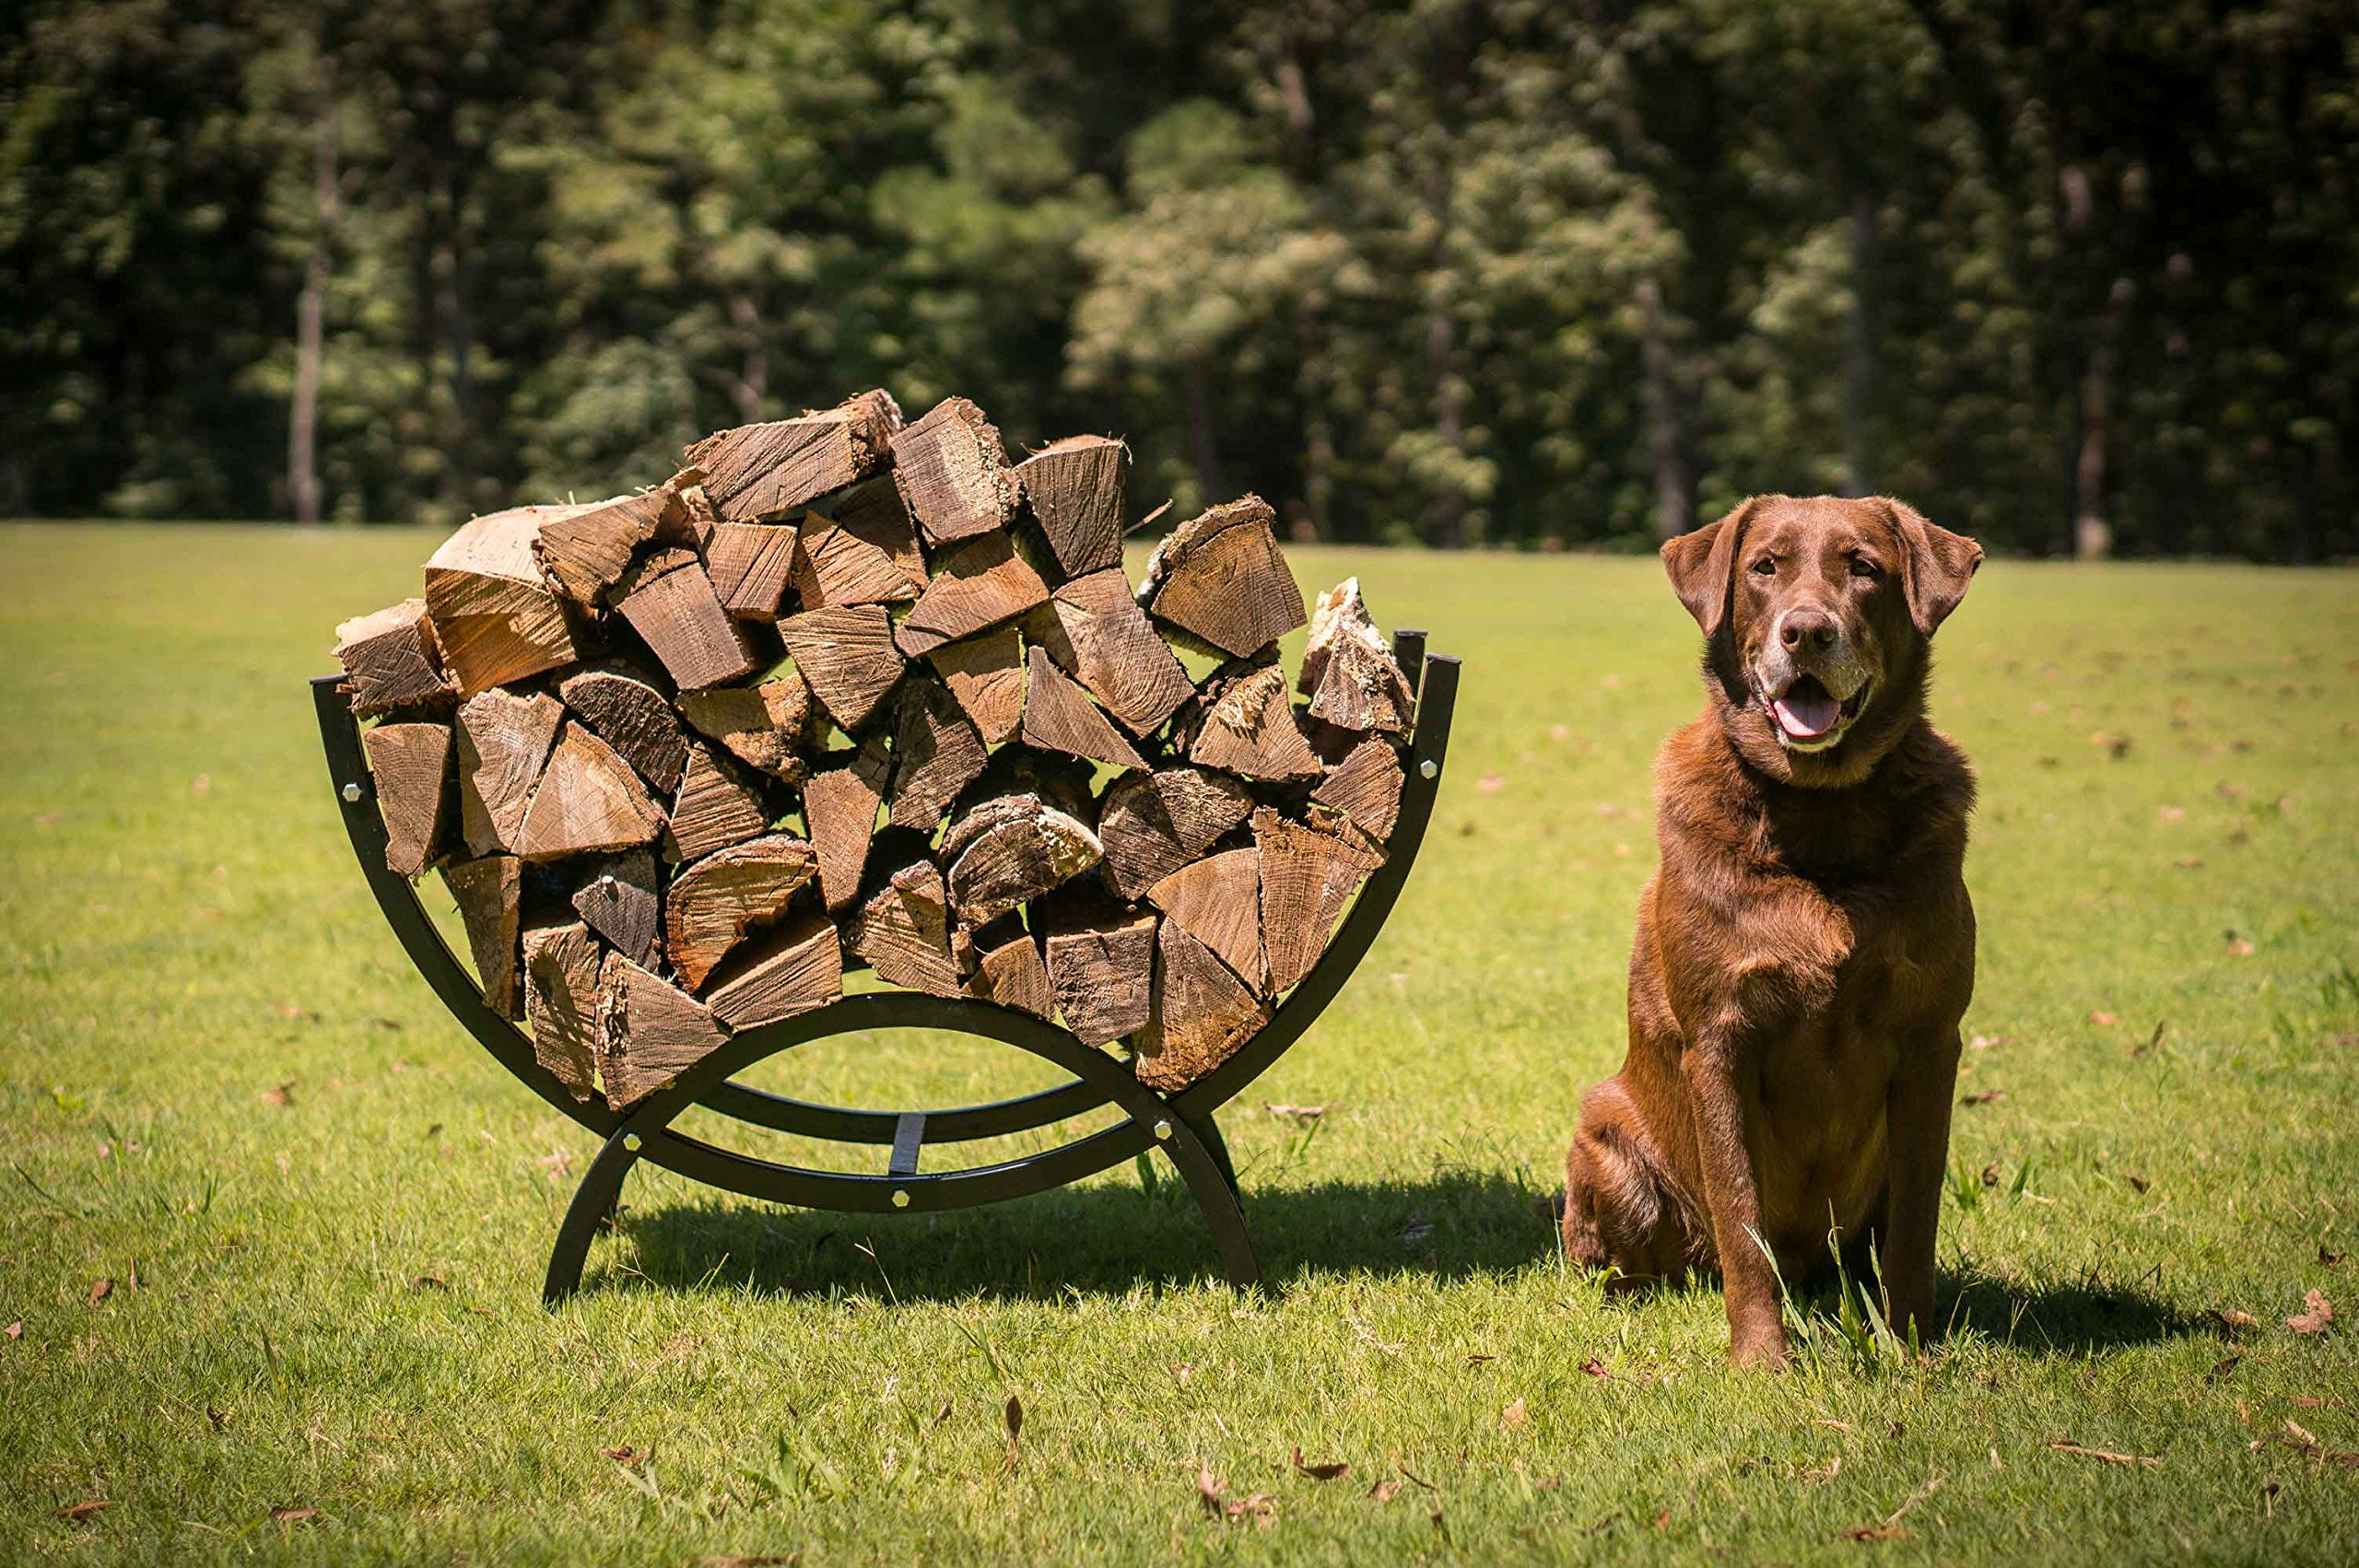 Titan Outdoors 39'' Curved Crescent Firewood Log Rack Wood Holder Lumber Storage by Titan Outdoors